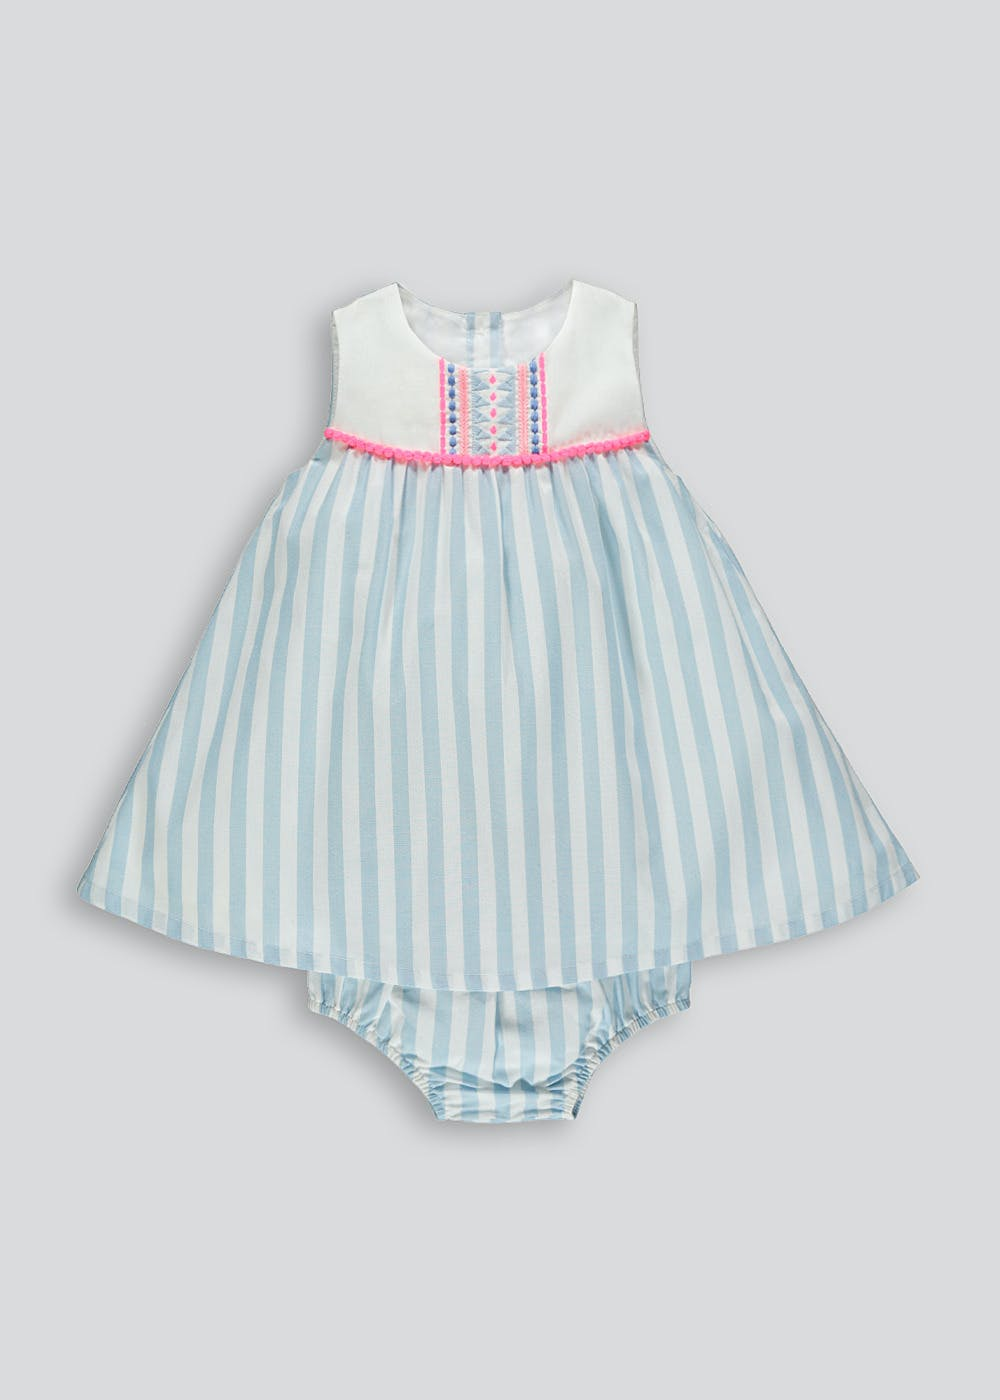 Clothes, Shoes & Accessories Dresses Next Baby Girl Summer Dress With Matching Sun Hat Size:0-3months Selected Material